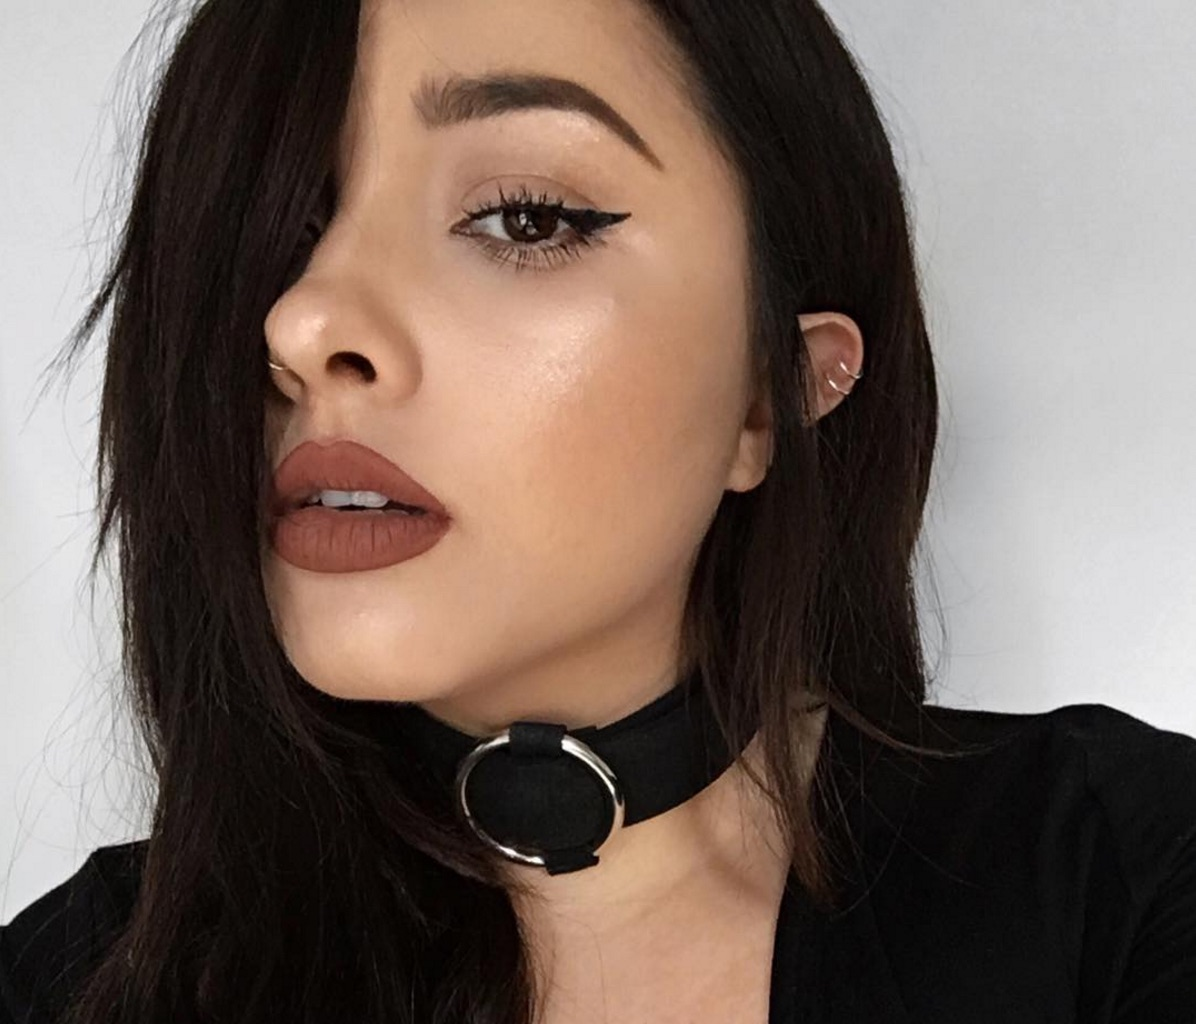 It's official: The choker is *the* style for fall, and here's a bunch of ways to rock one